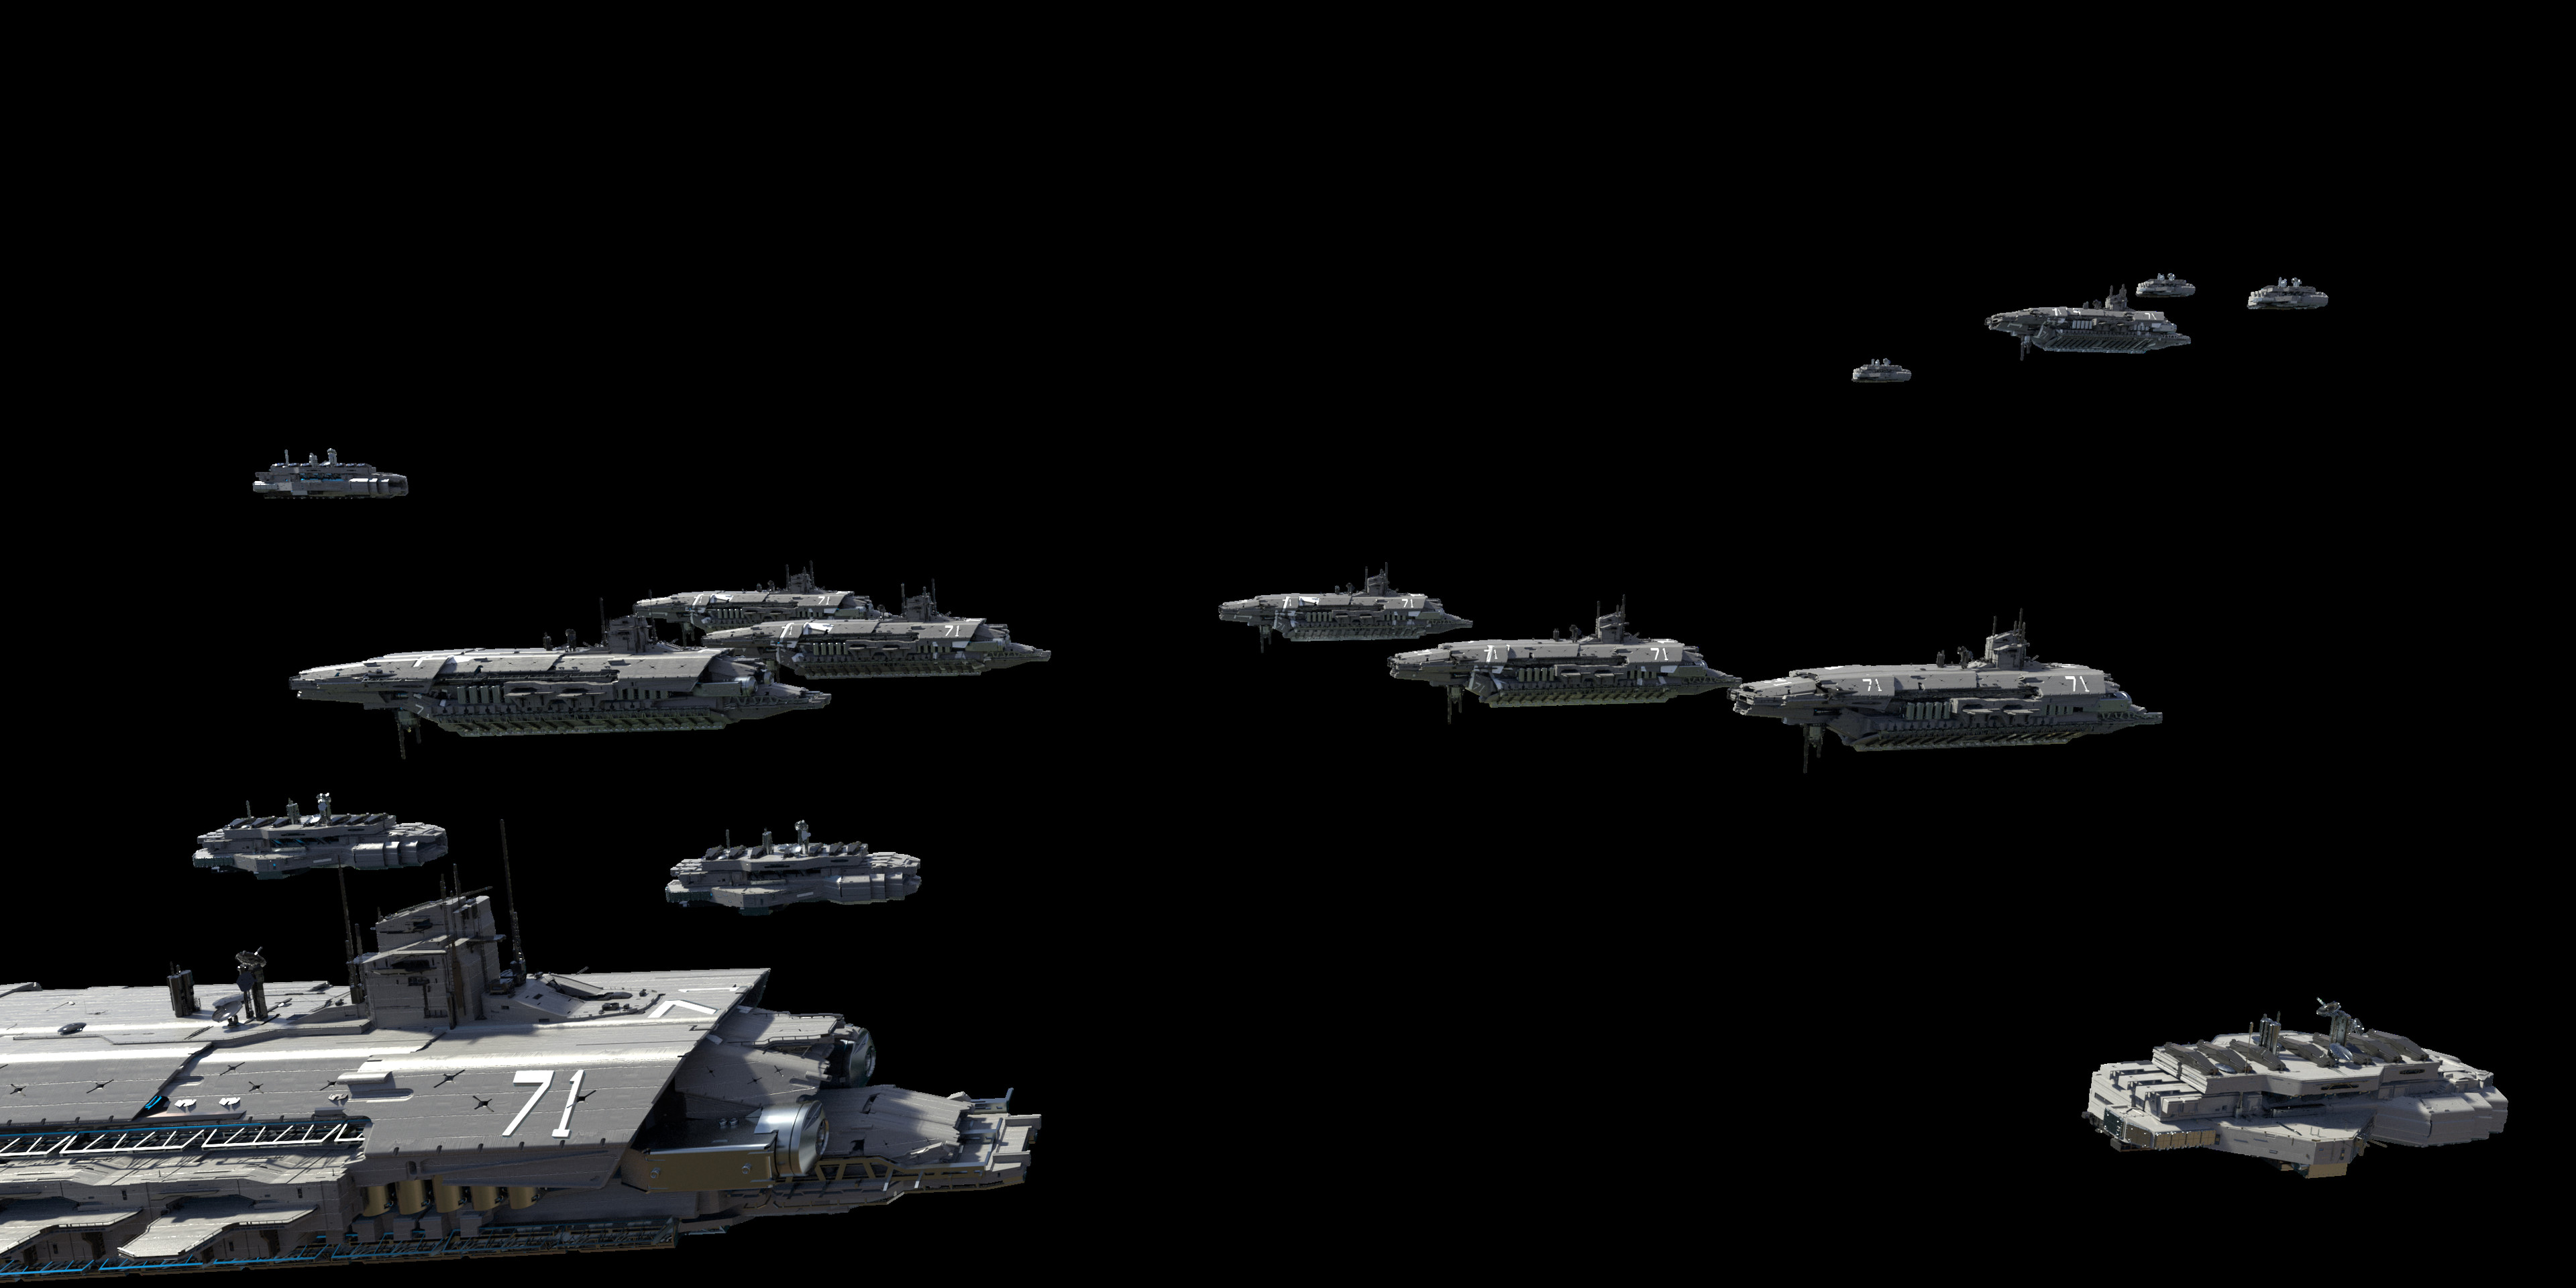 Kitbashed ships made with parts from Nick Govacko and Vitaly Bulgarov